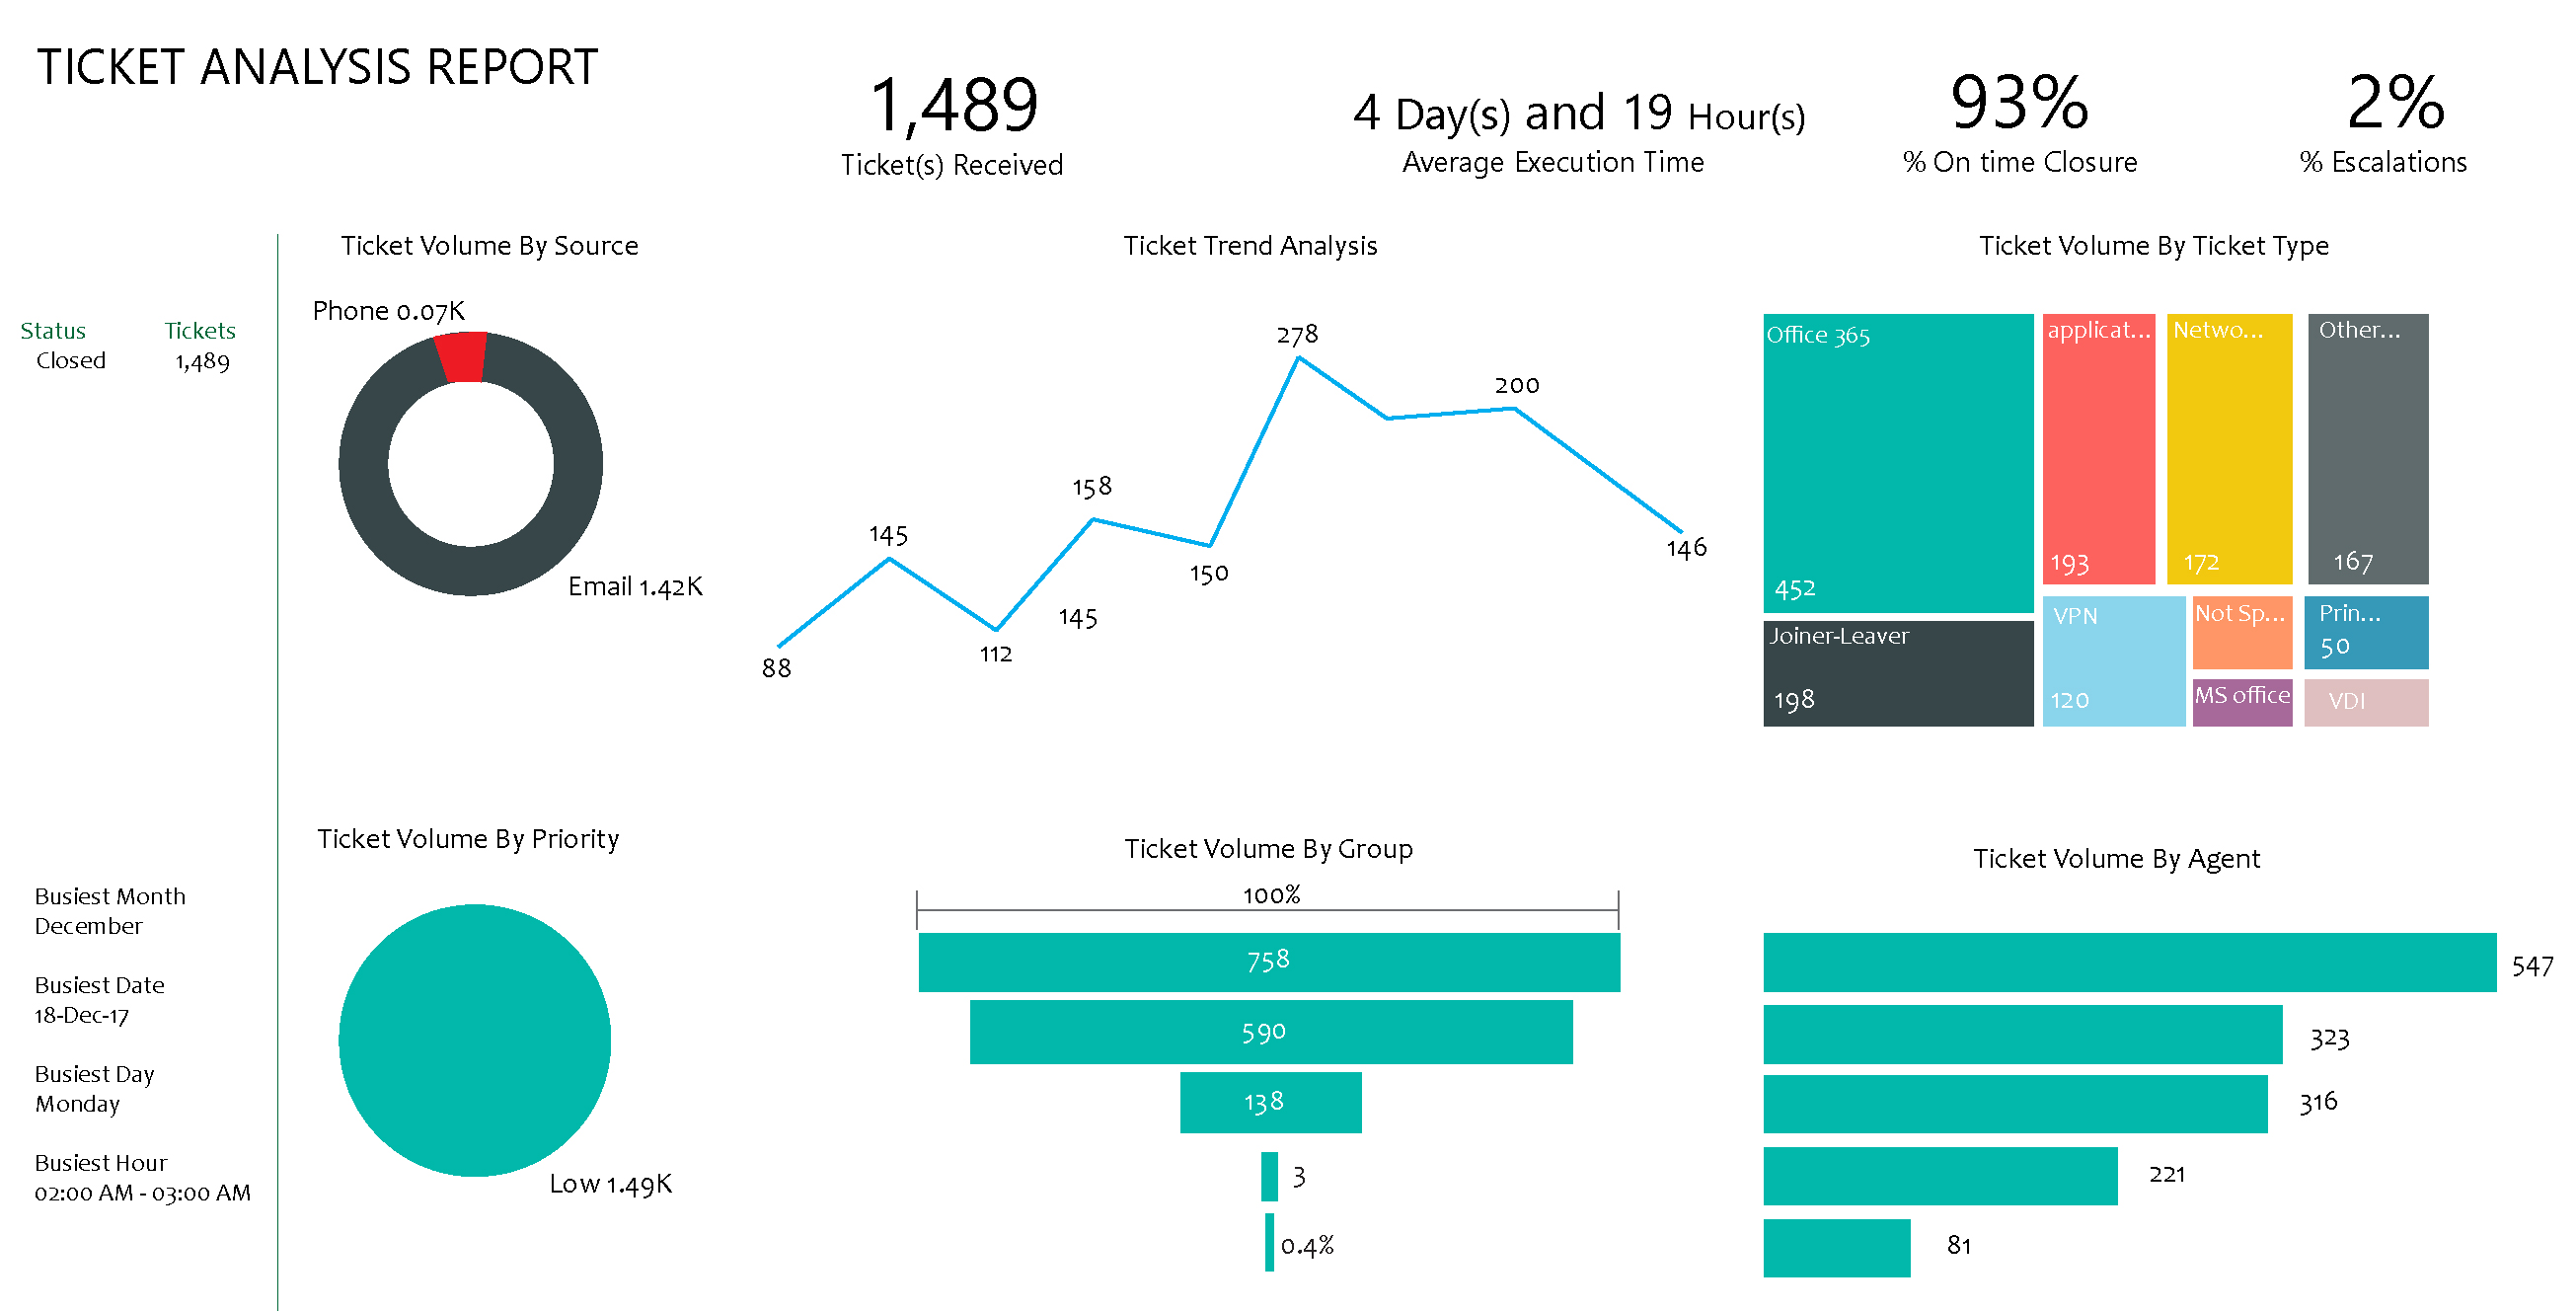 Ticket Analysis